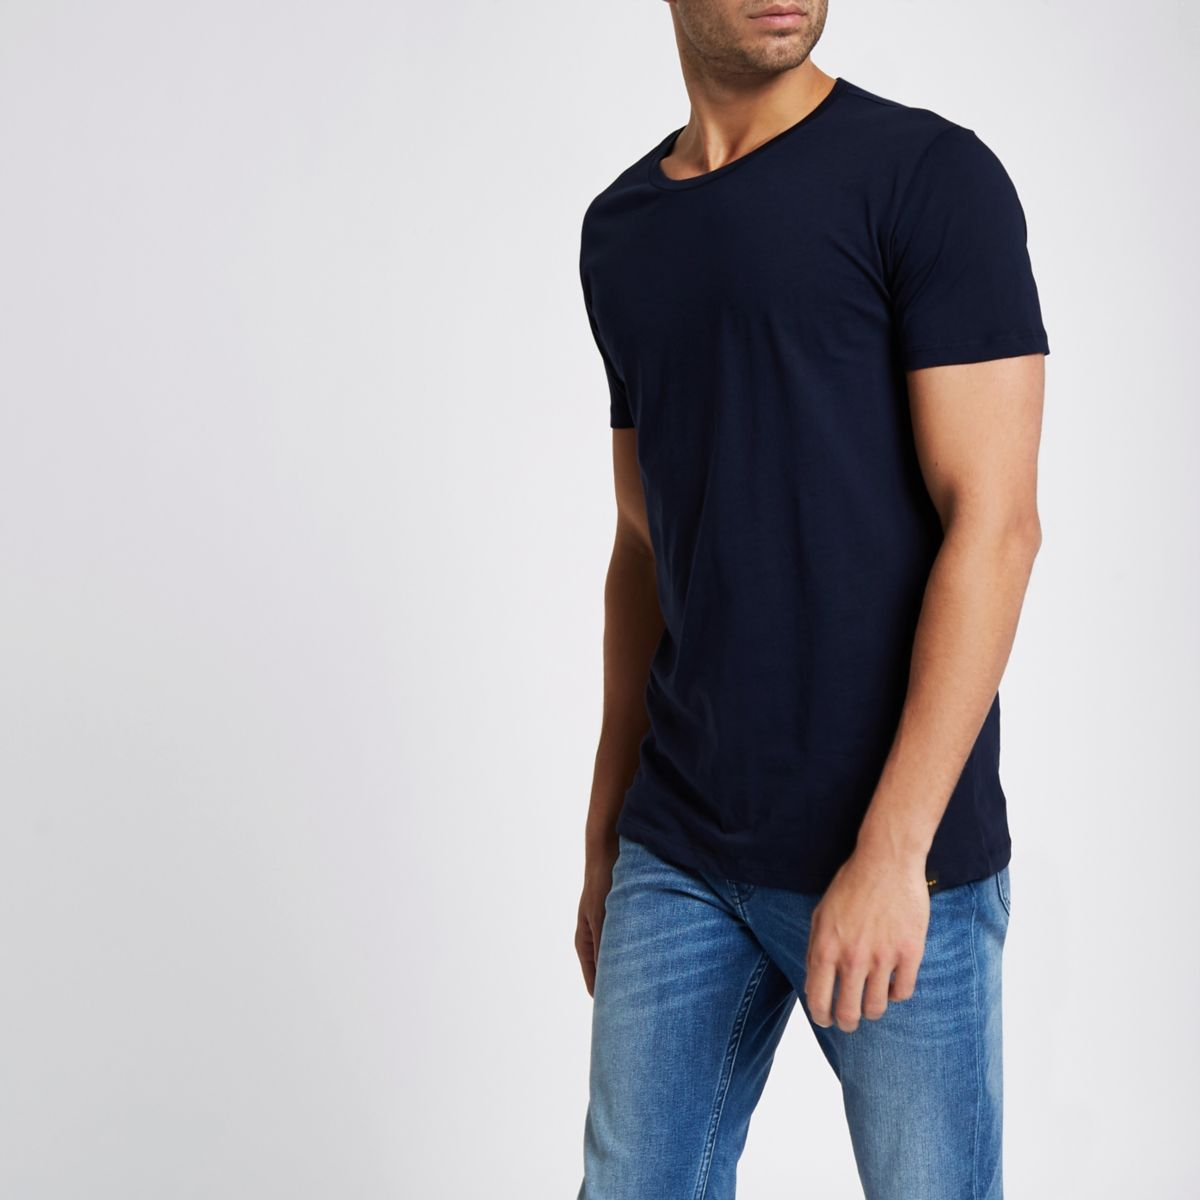 Navy Lee crew neck short sleeve T-shirt